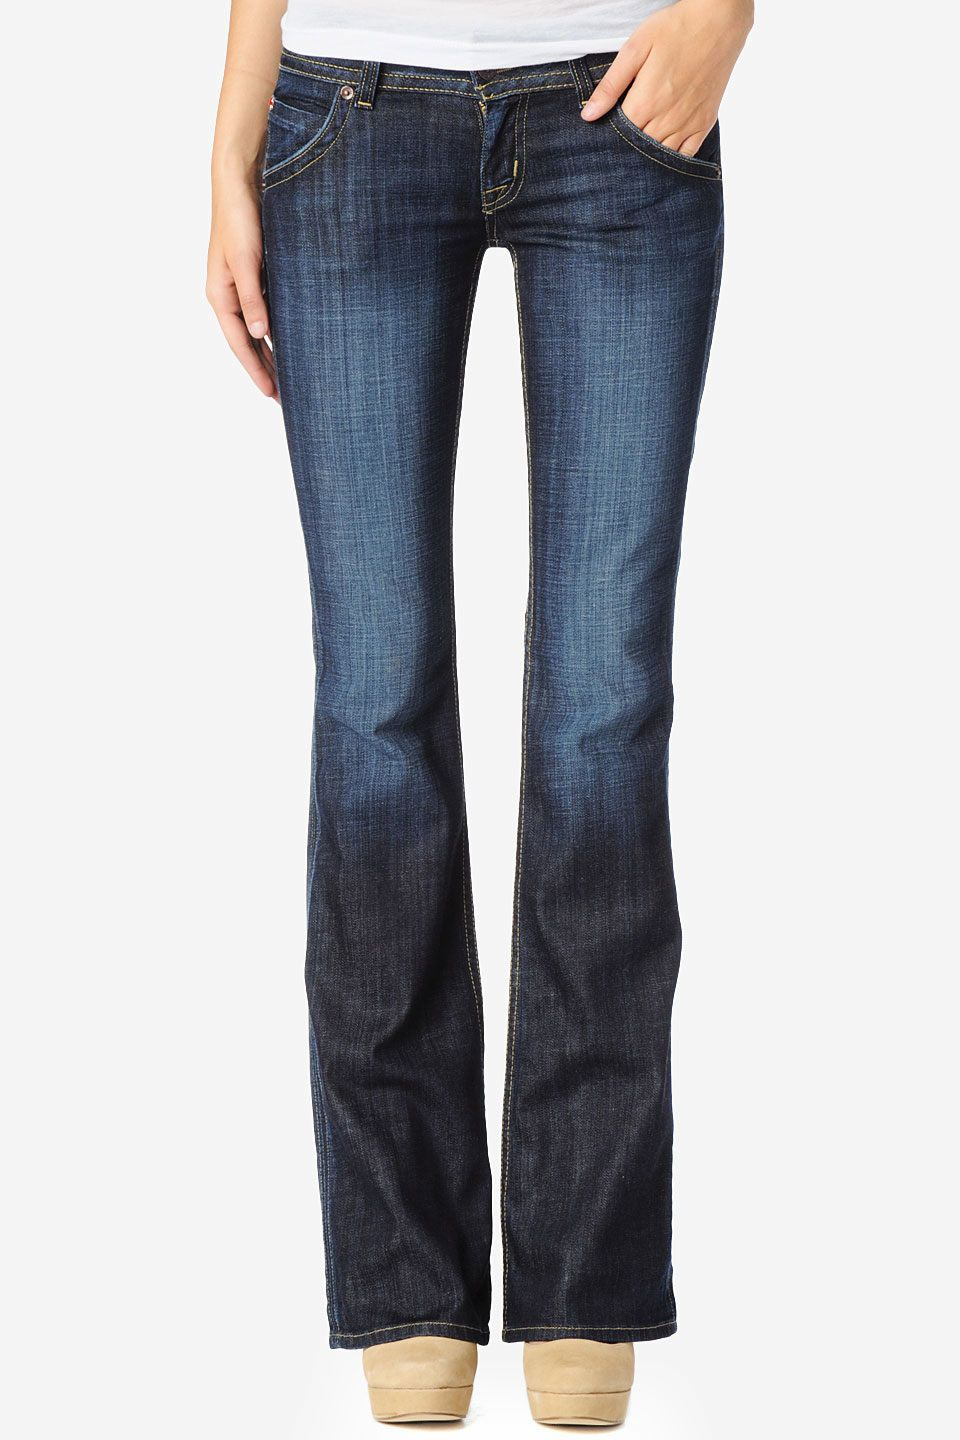 247e0d51e74 hudson-signature-bootcut-jeans-w170dha-elm | DENIM TRENDS ACROSS THE ...